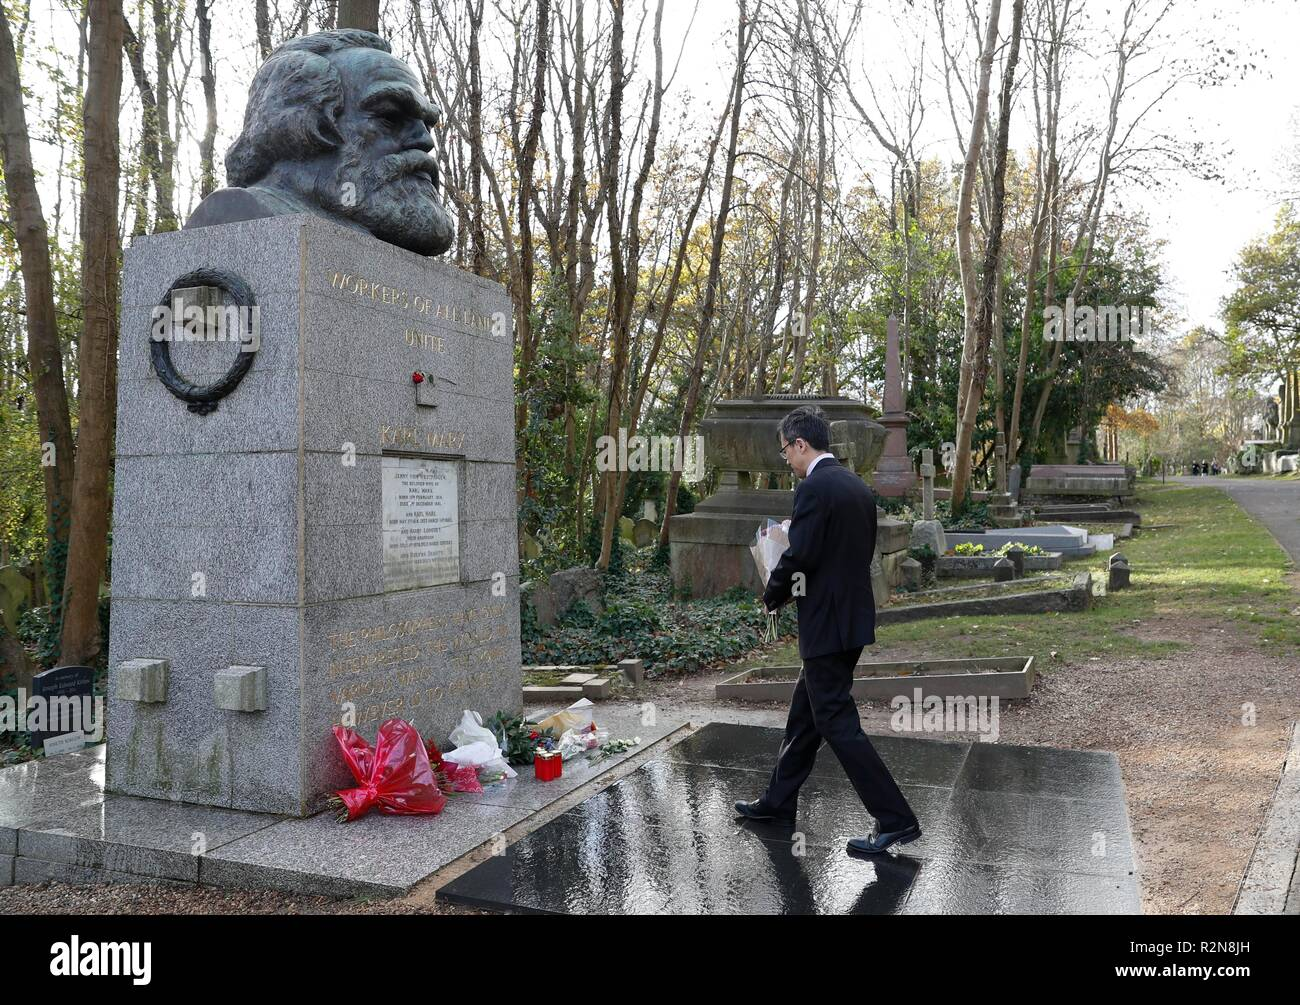 London, Britain. 19th Nov, 2018. Charge d'Affaires Zhu Qin of the Chinese Embassy to Britain, pays tribute at an event commemorating the 200th anniversary of Karl Marx's birth in front of the grave of Marx at Highgate cemetery in northwest London, Britain, on Nov. 19, 2018. The Chinese Embassy donated a number of books on contemporary China and on the Communist Party of China to the Marx Memorial Library. Credit: Han Yan/Xinhua/Alamy Live News Stock Photo